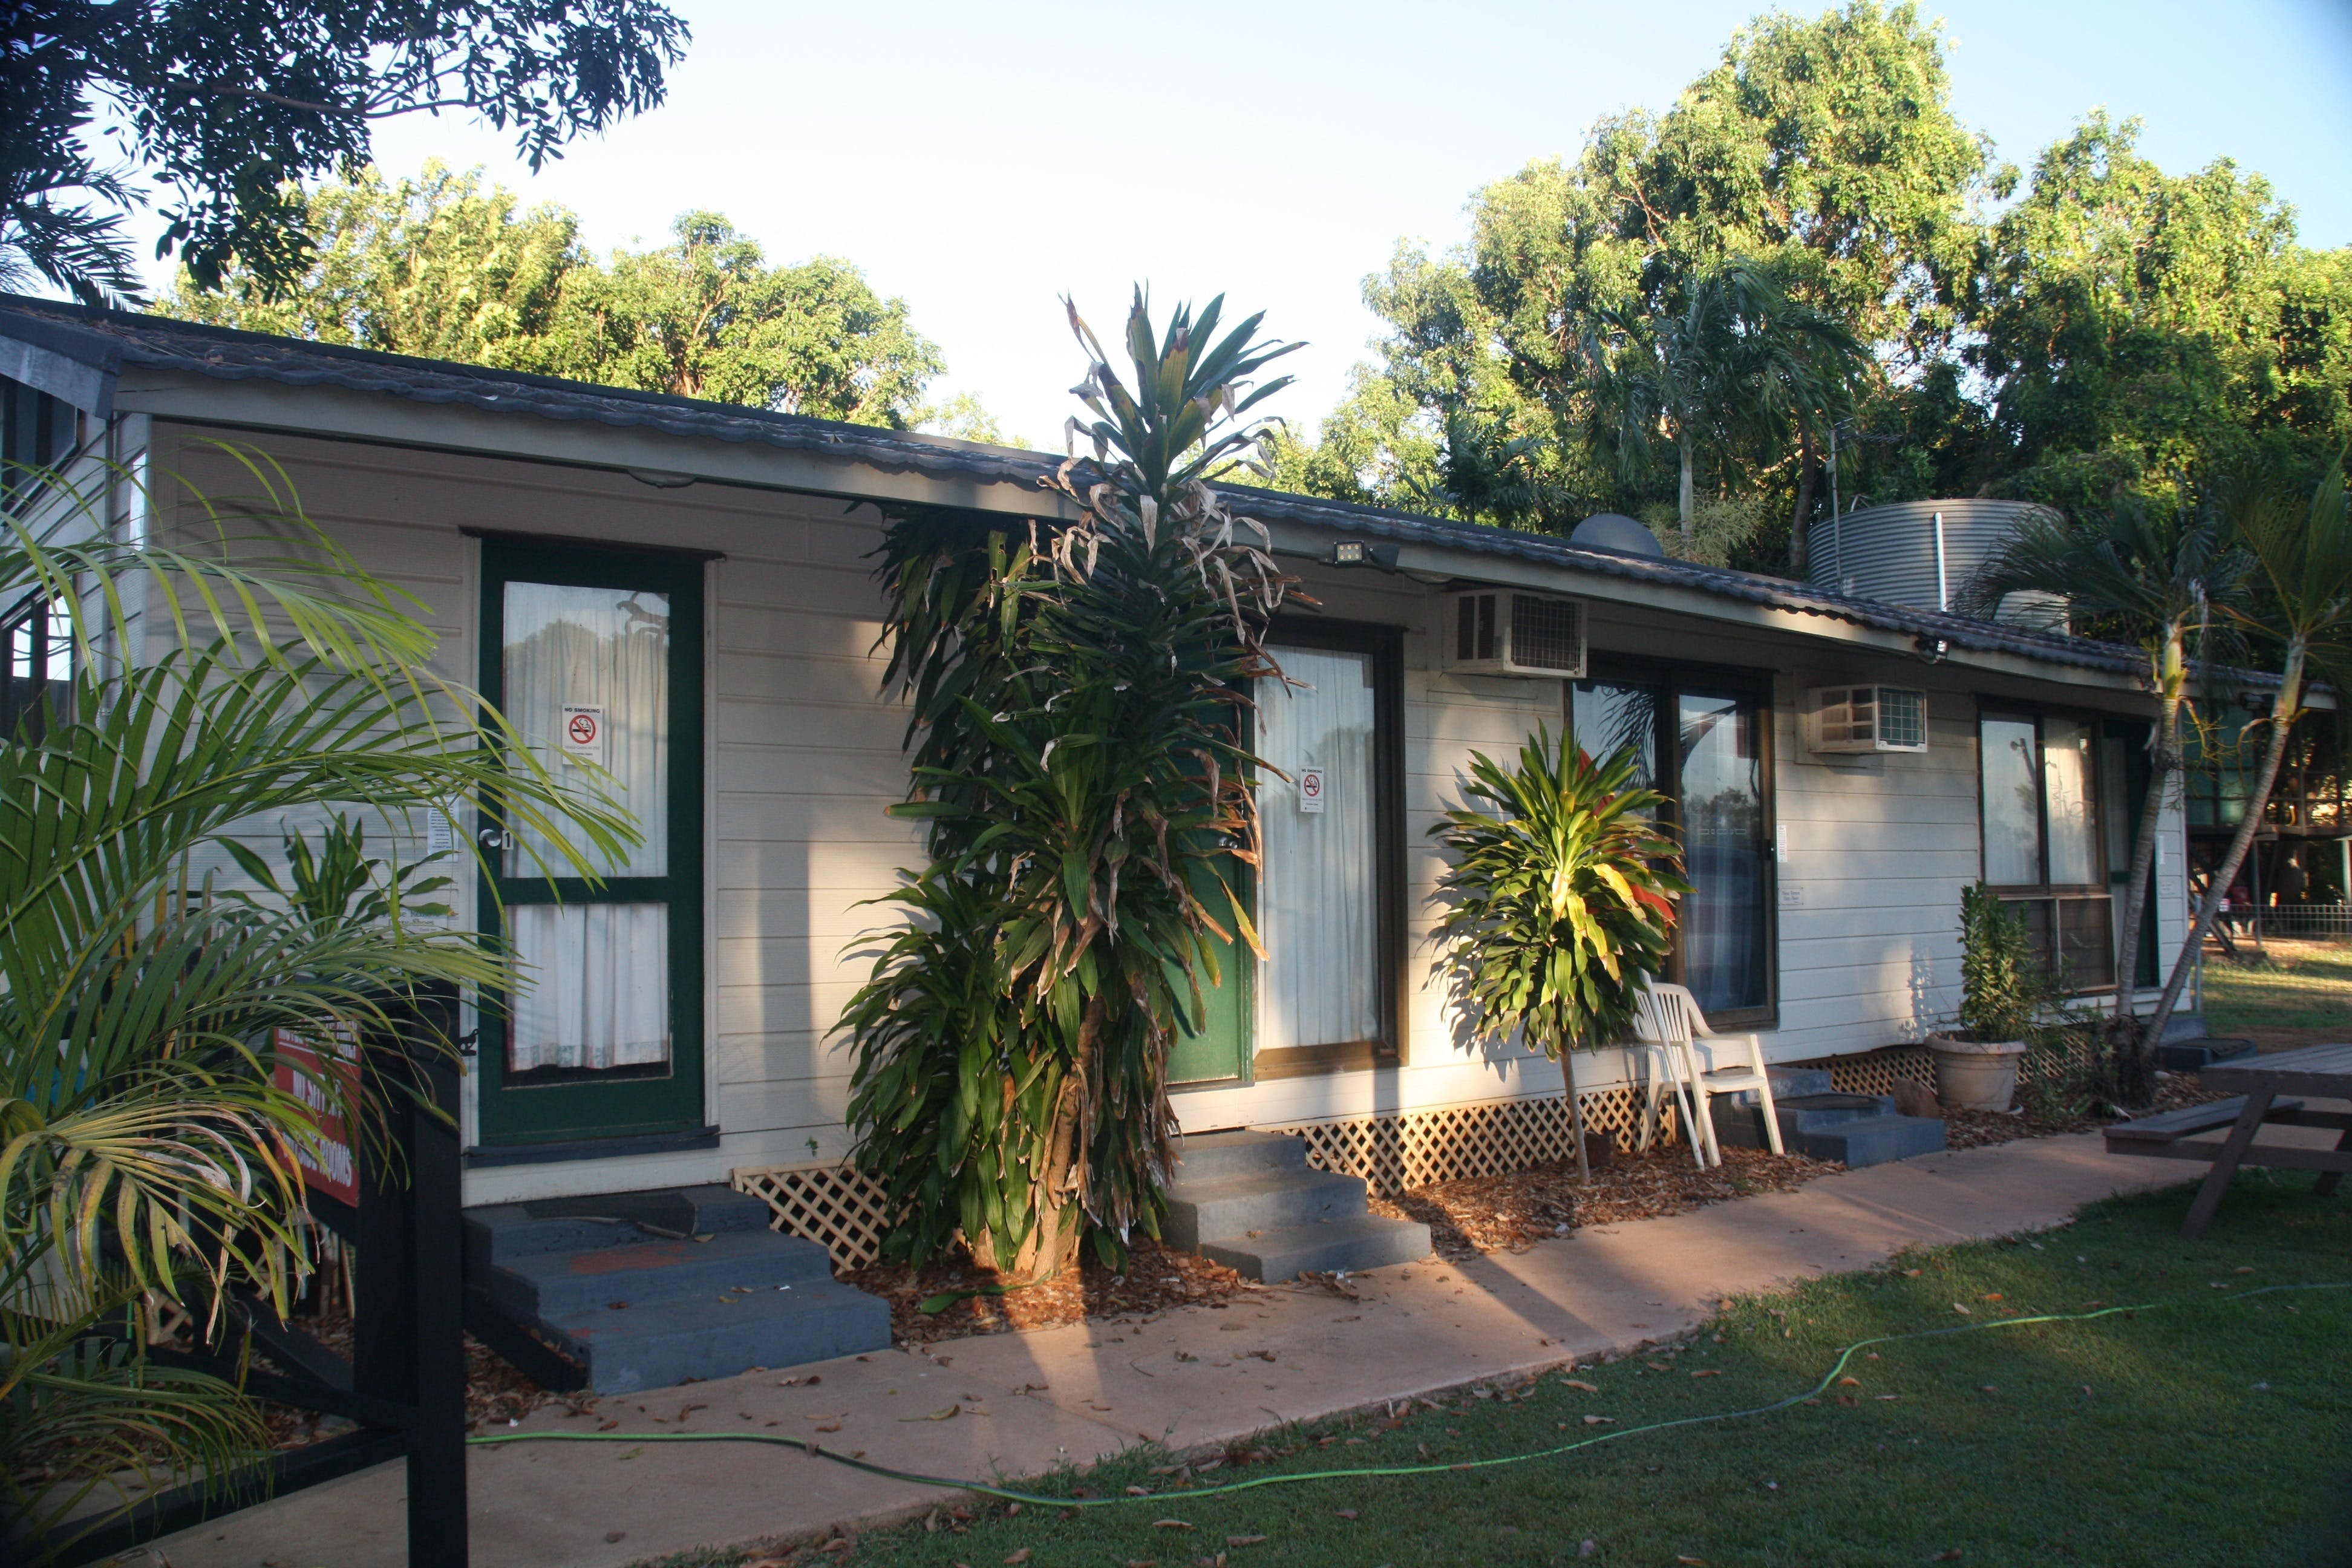 Daly River Roadside Inn - Accommodation Noosa